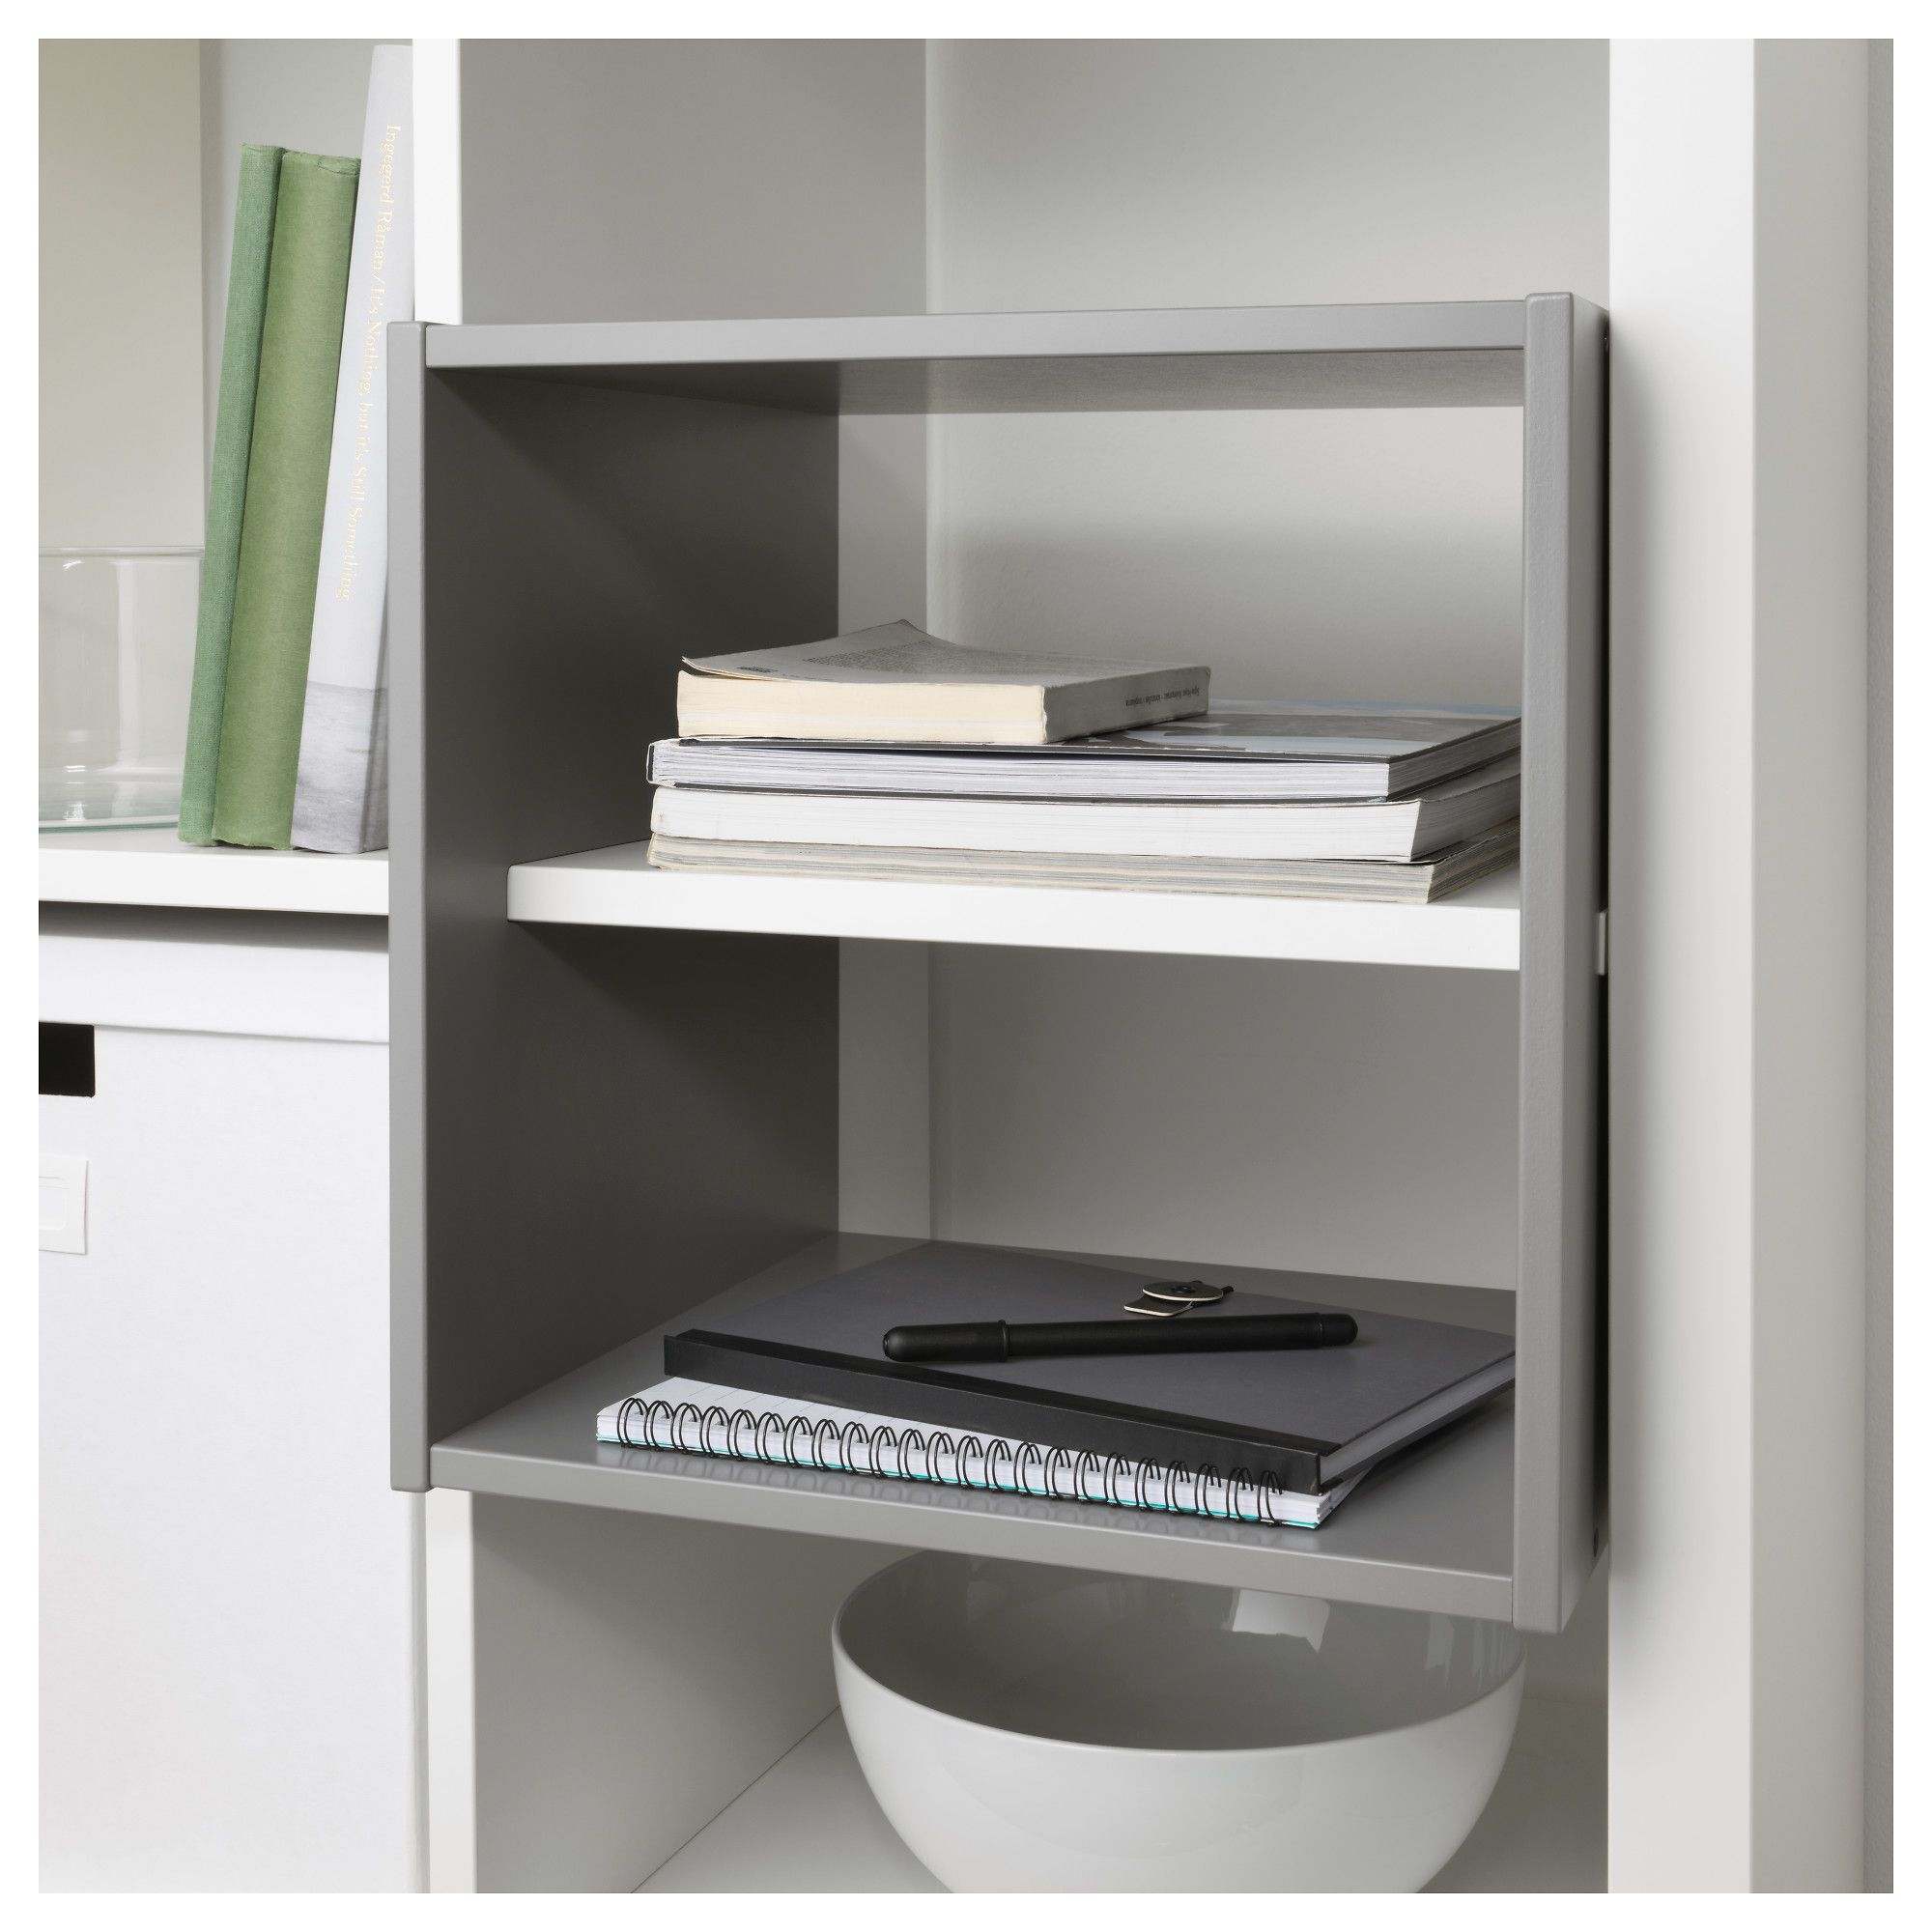 IKEA KALLAX Shelf divider Light grey cm You can use the inserts to customise KALLAX shelving unit so that it suits your storage needs